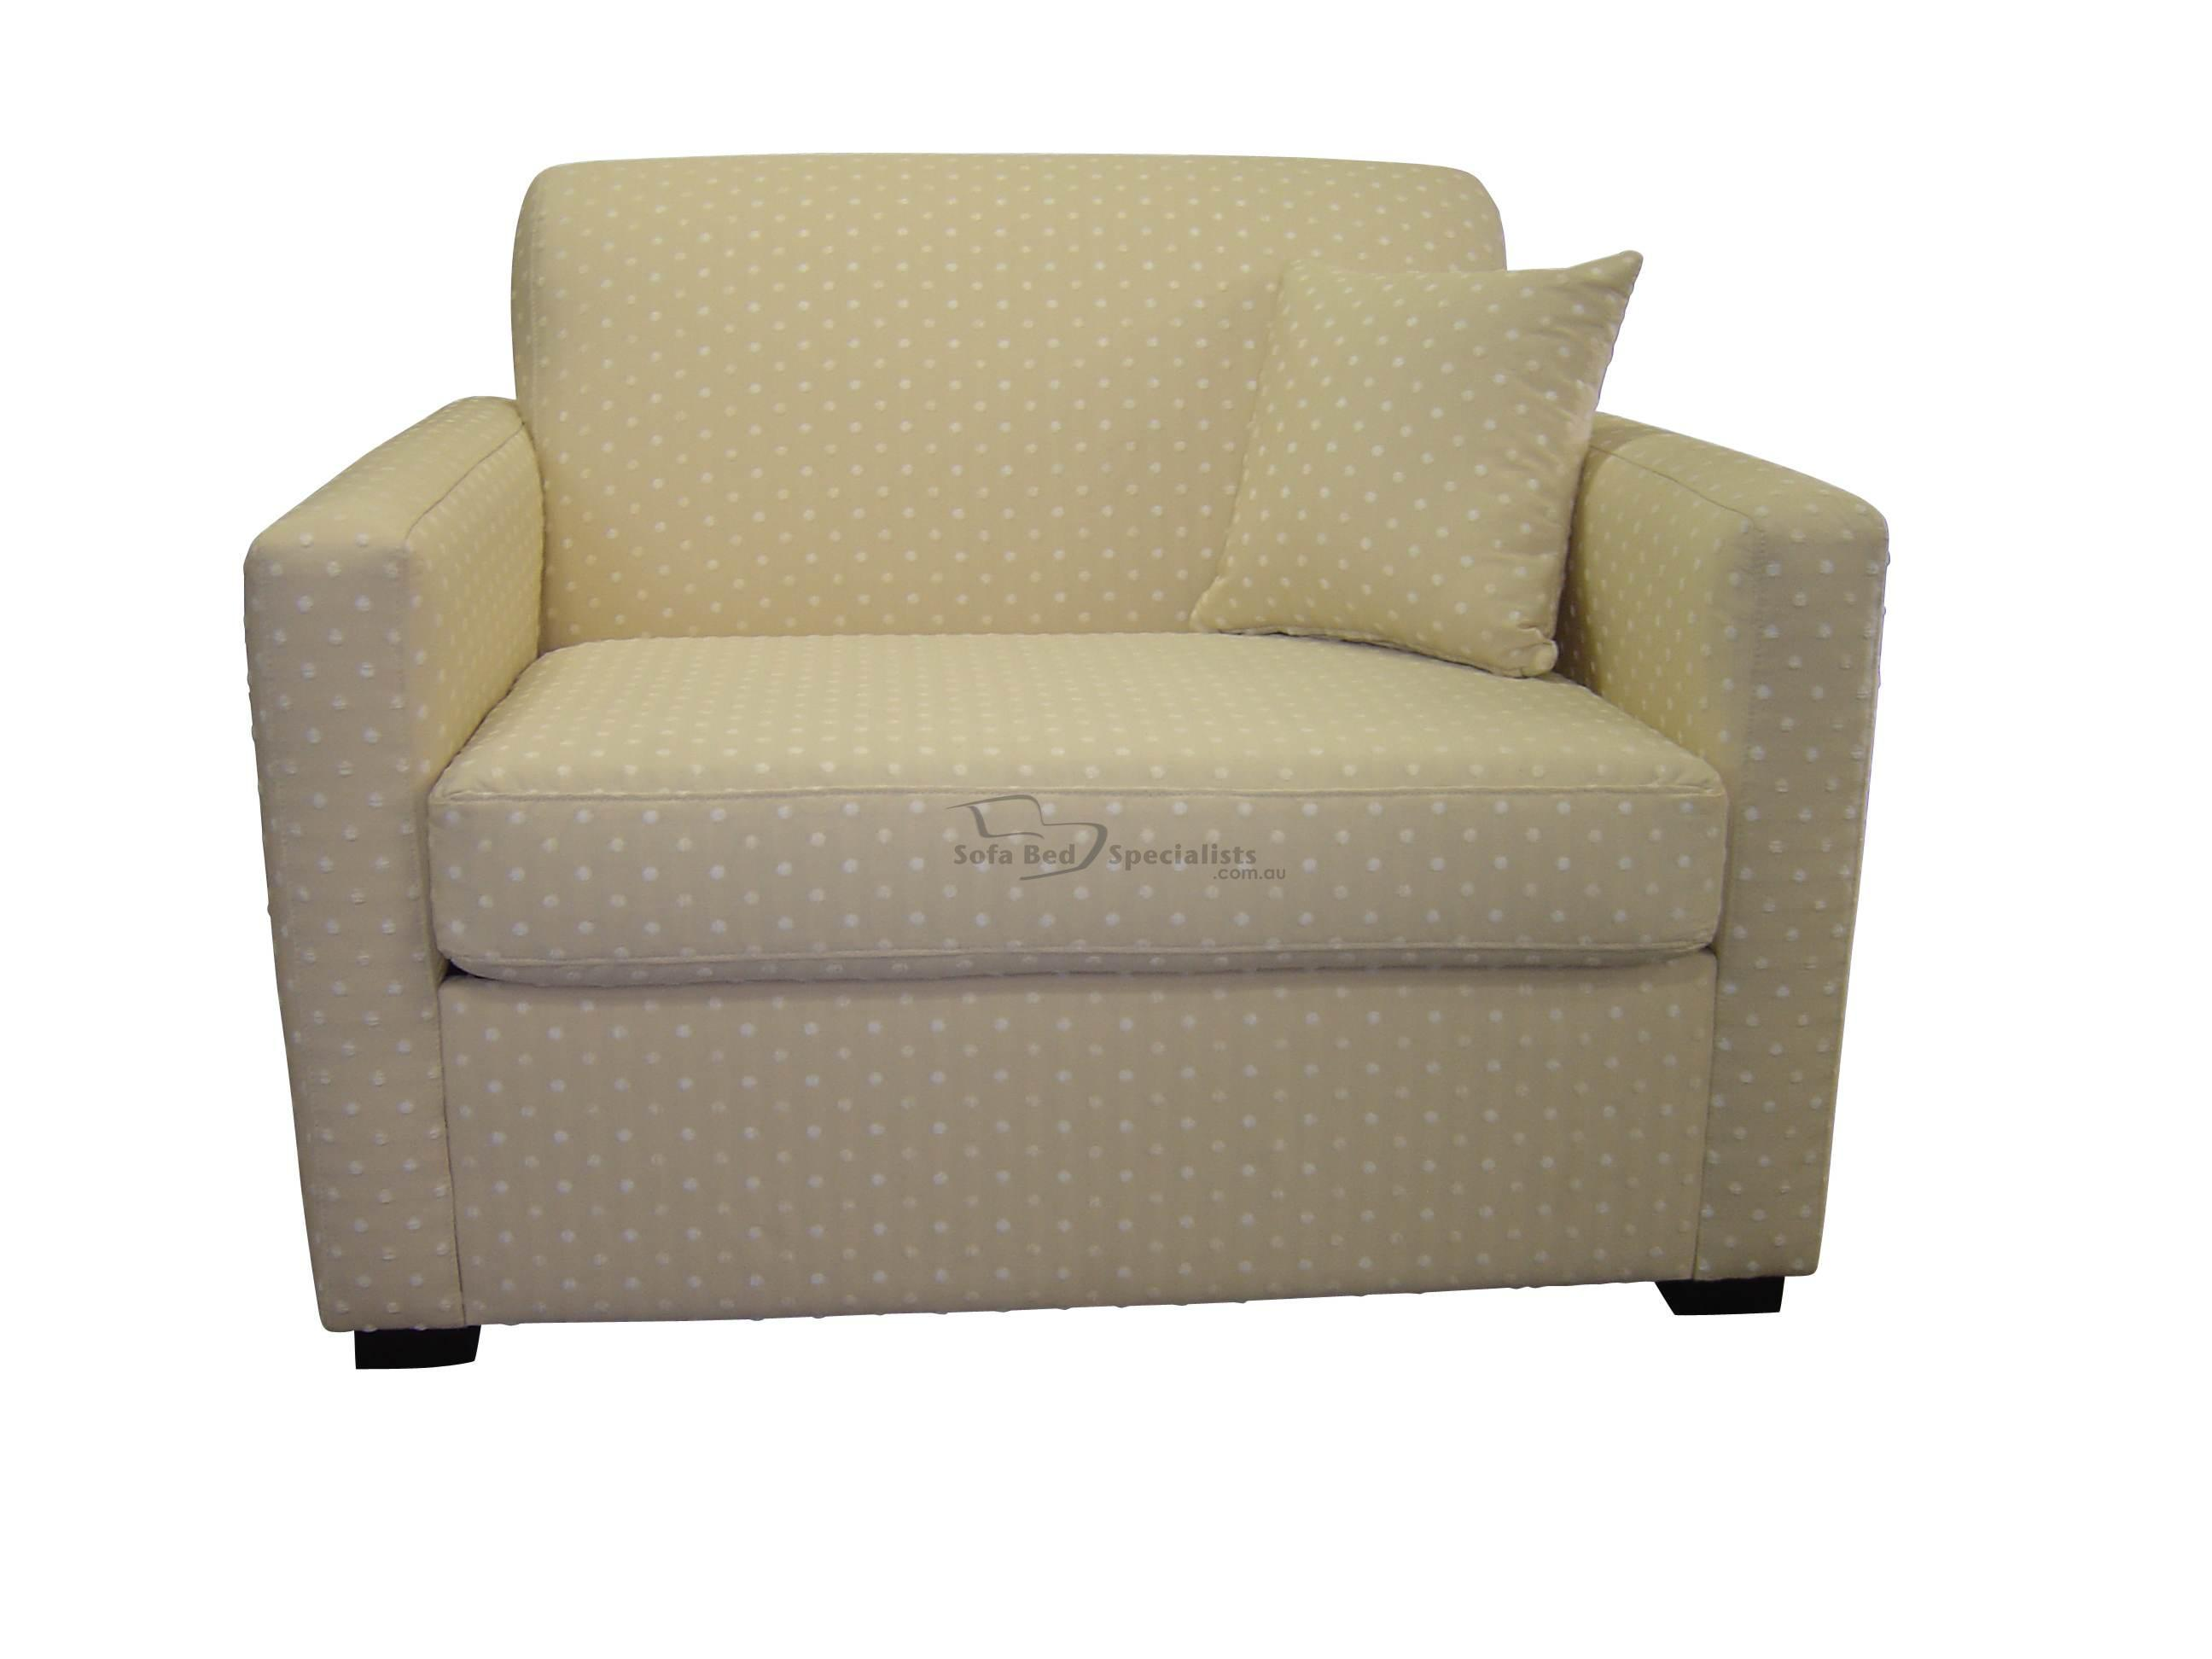 Single sofa bed chair new spec inc sofa bed 04 single futon chair walmart chair sofabed with Single couch bed